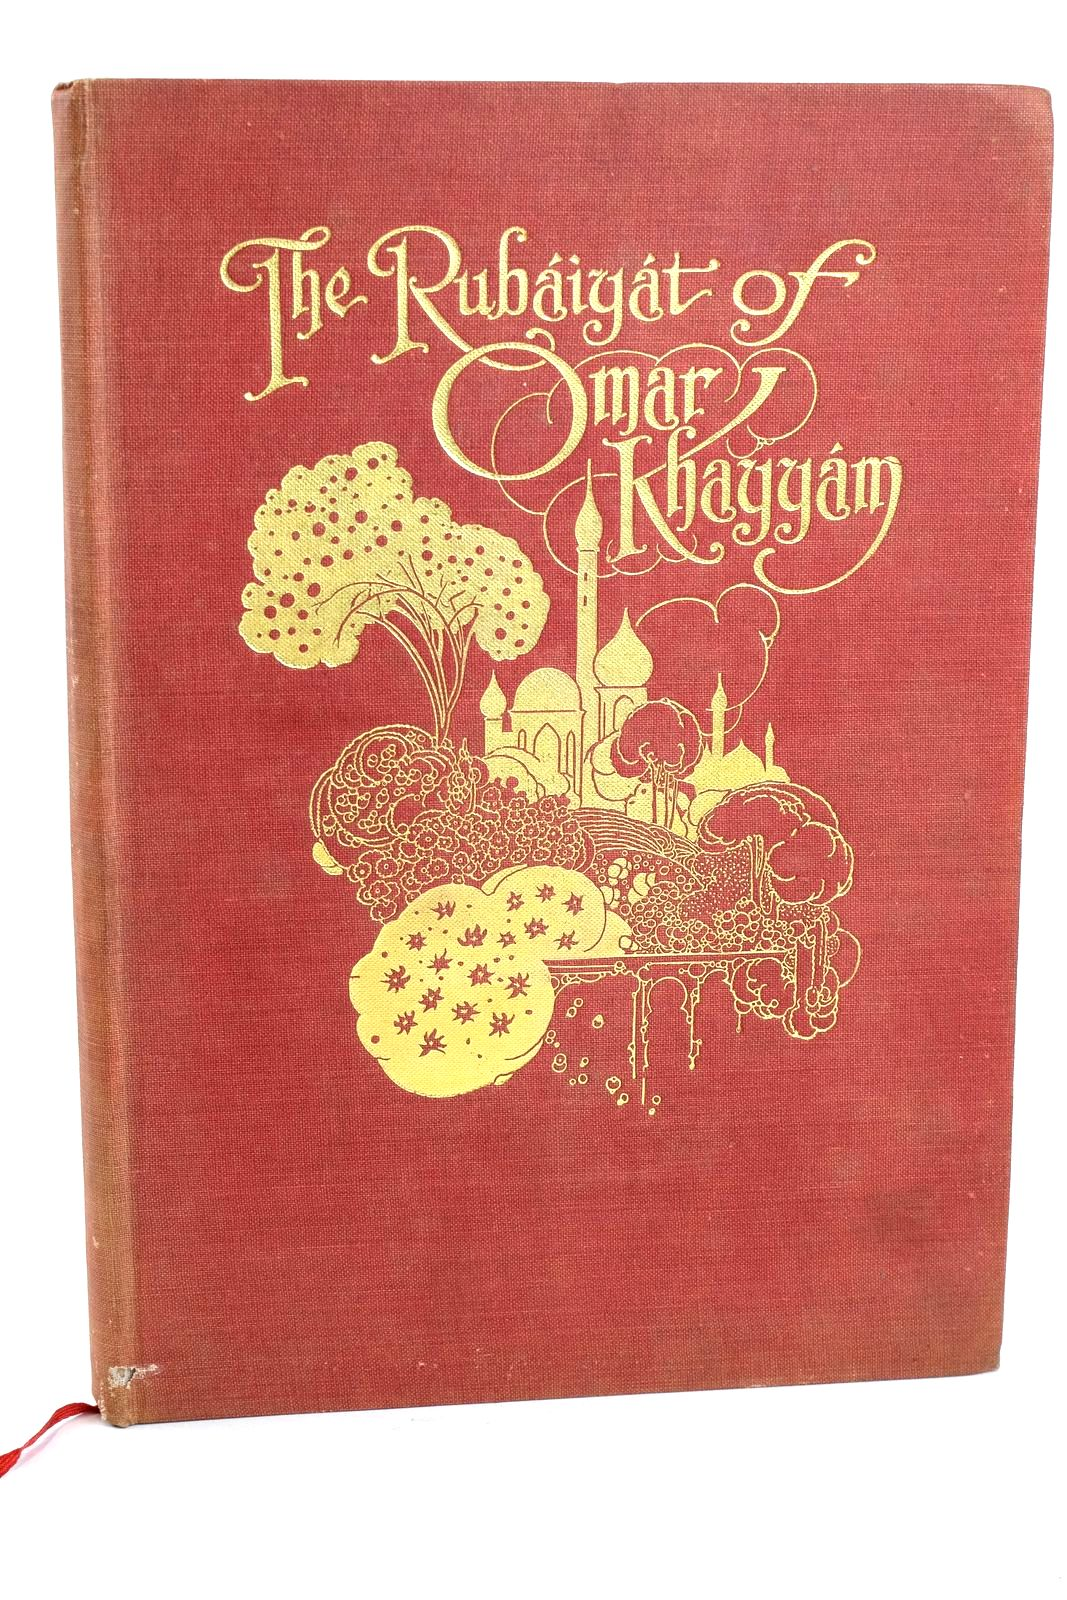 Photo of THE RUBAIYAT OF OMAR KHAYYAM- Stock Number: 1318593